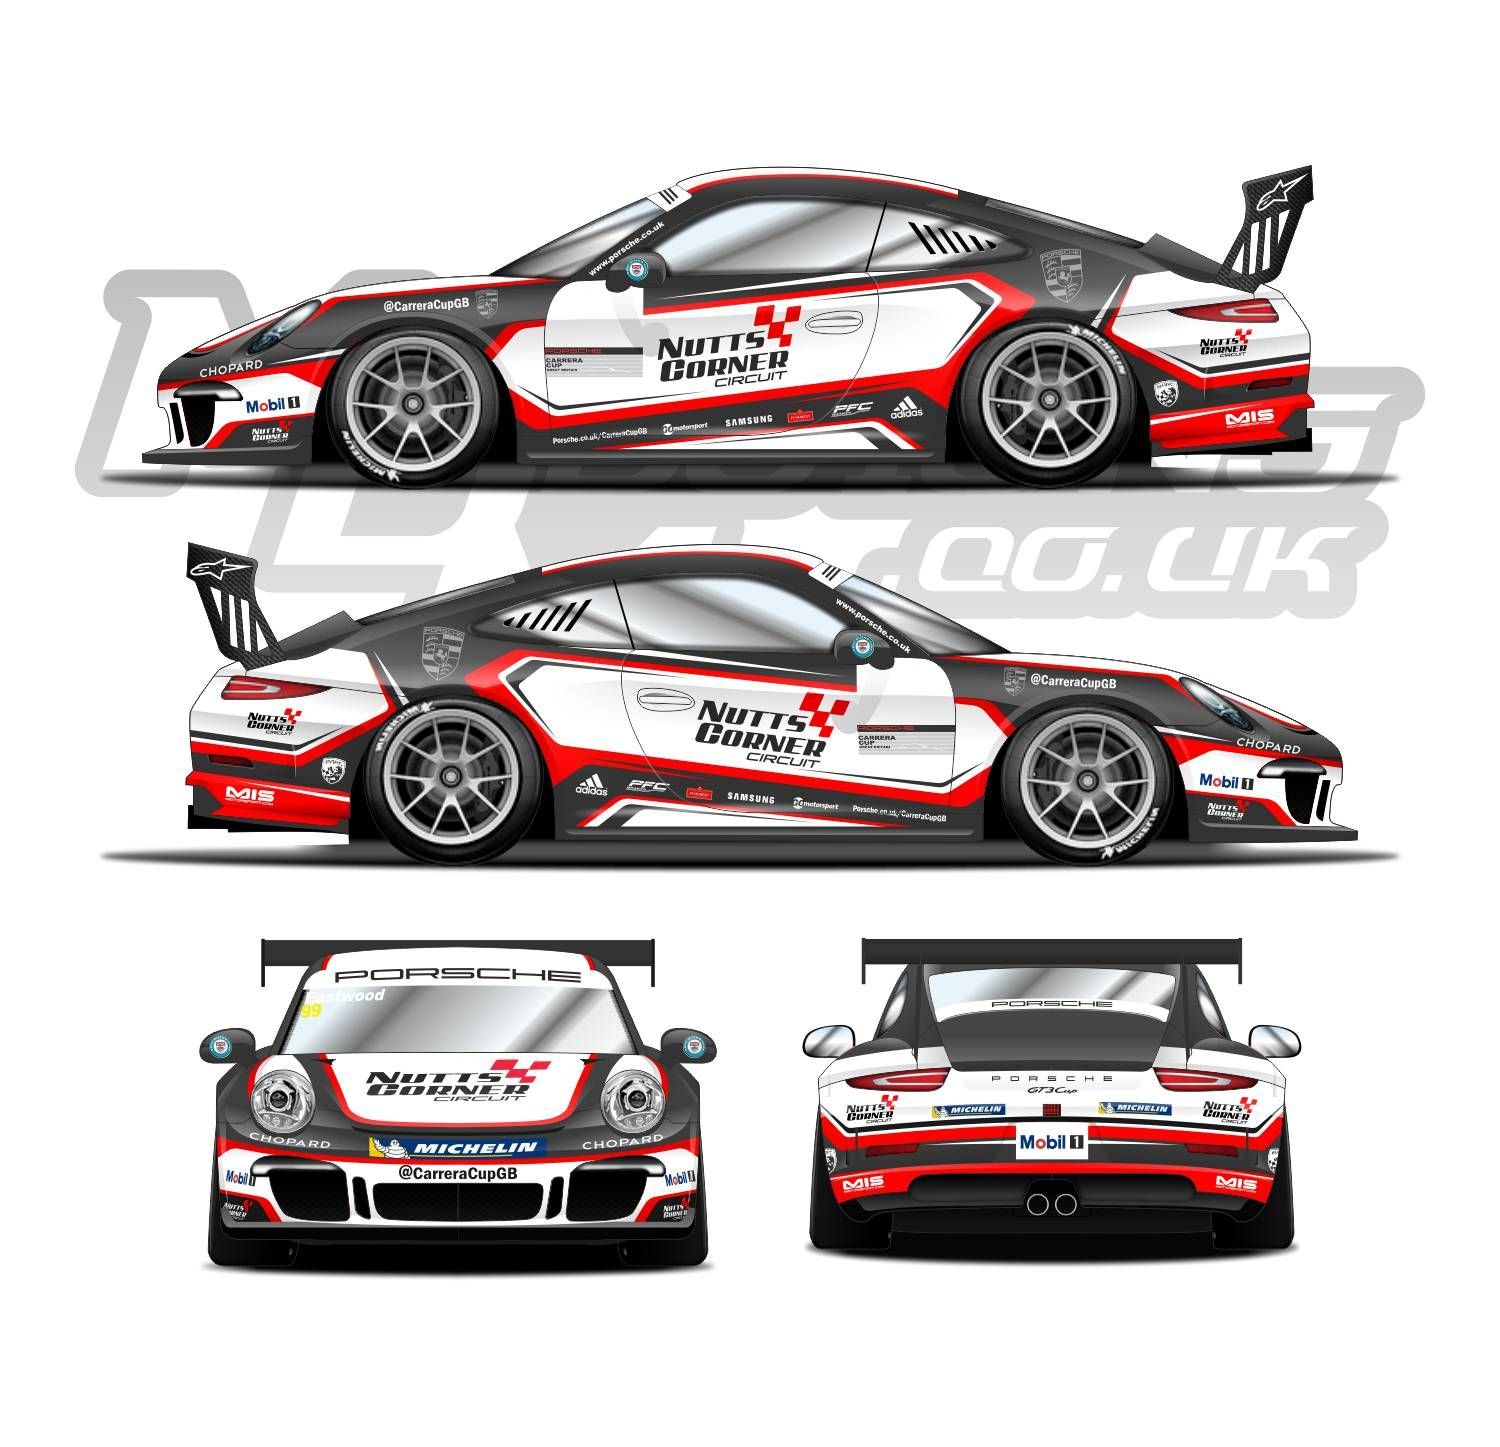 Pin by Alex Ventura on car livery | Racing car design, Gt